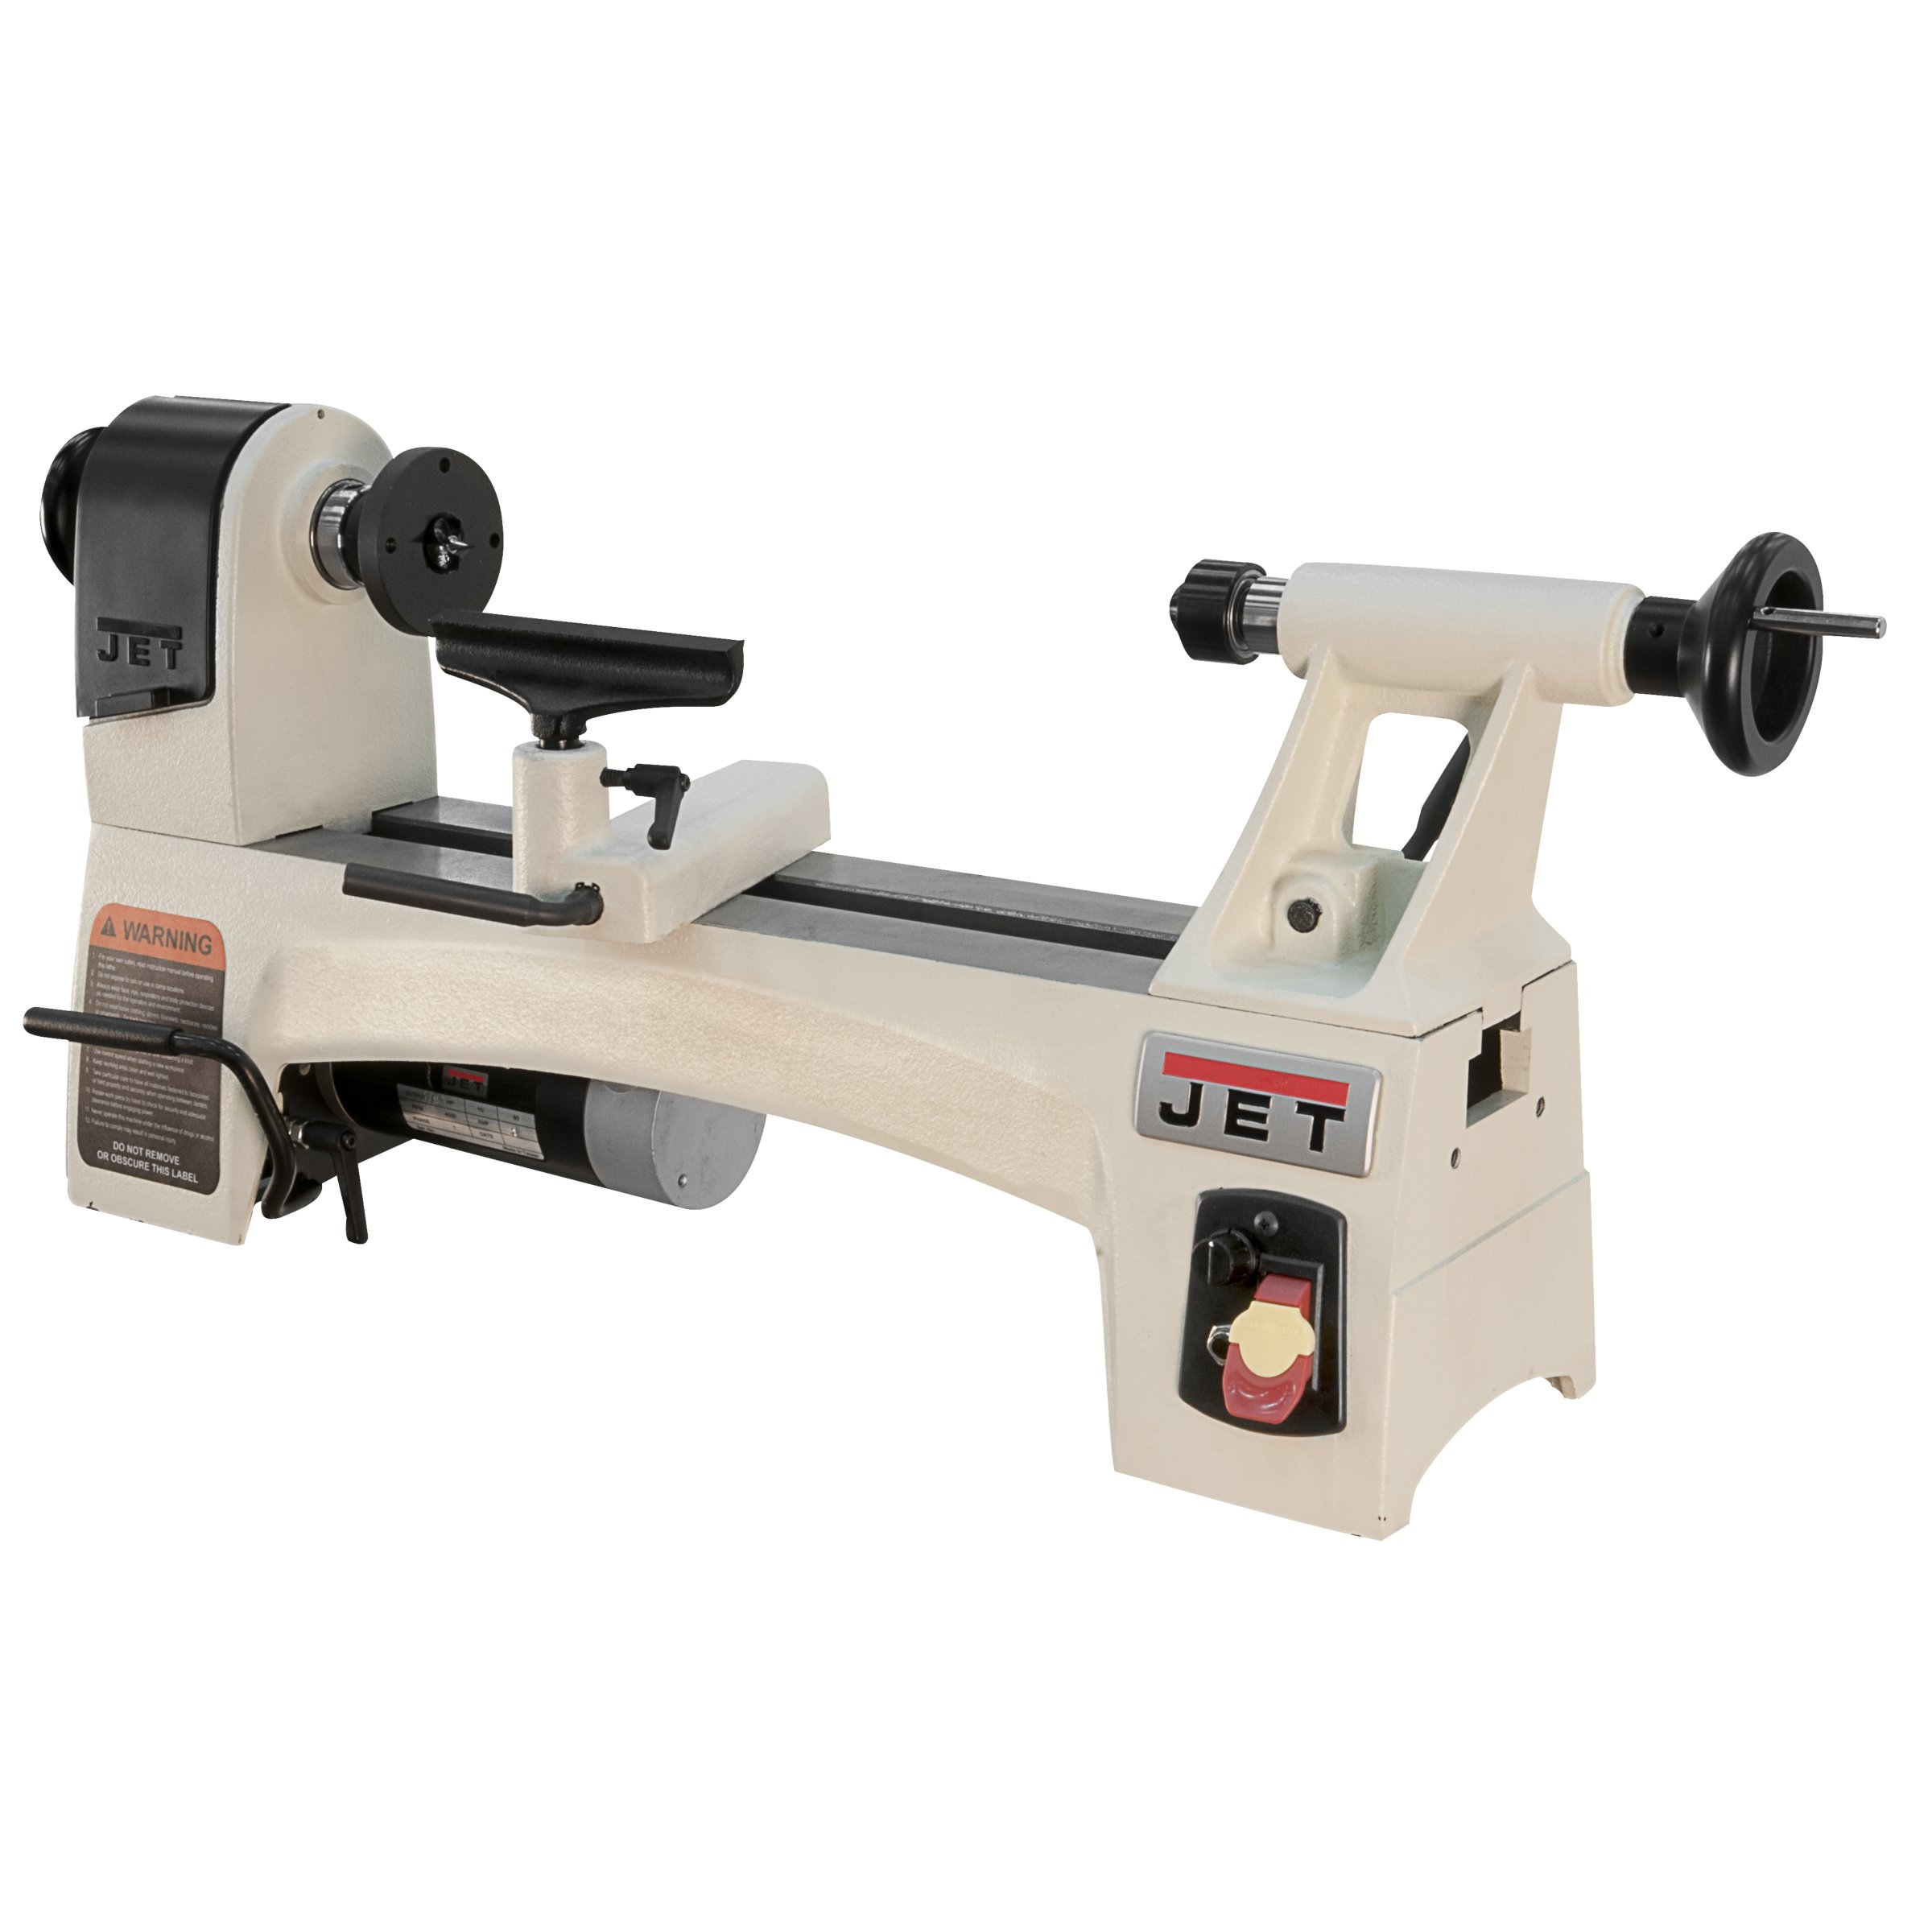 Jet JWL-1015VS 10-Inch X 15-Inch Variable Speed Wood Working Lathe